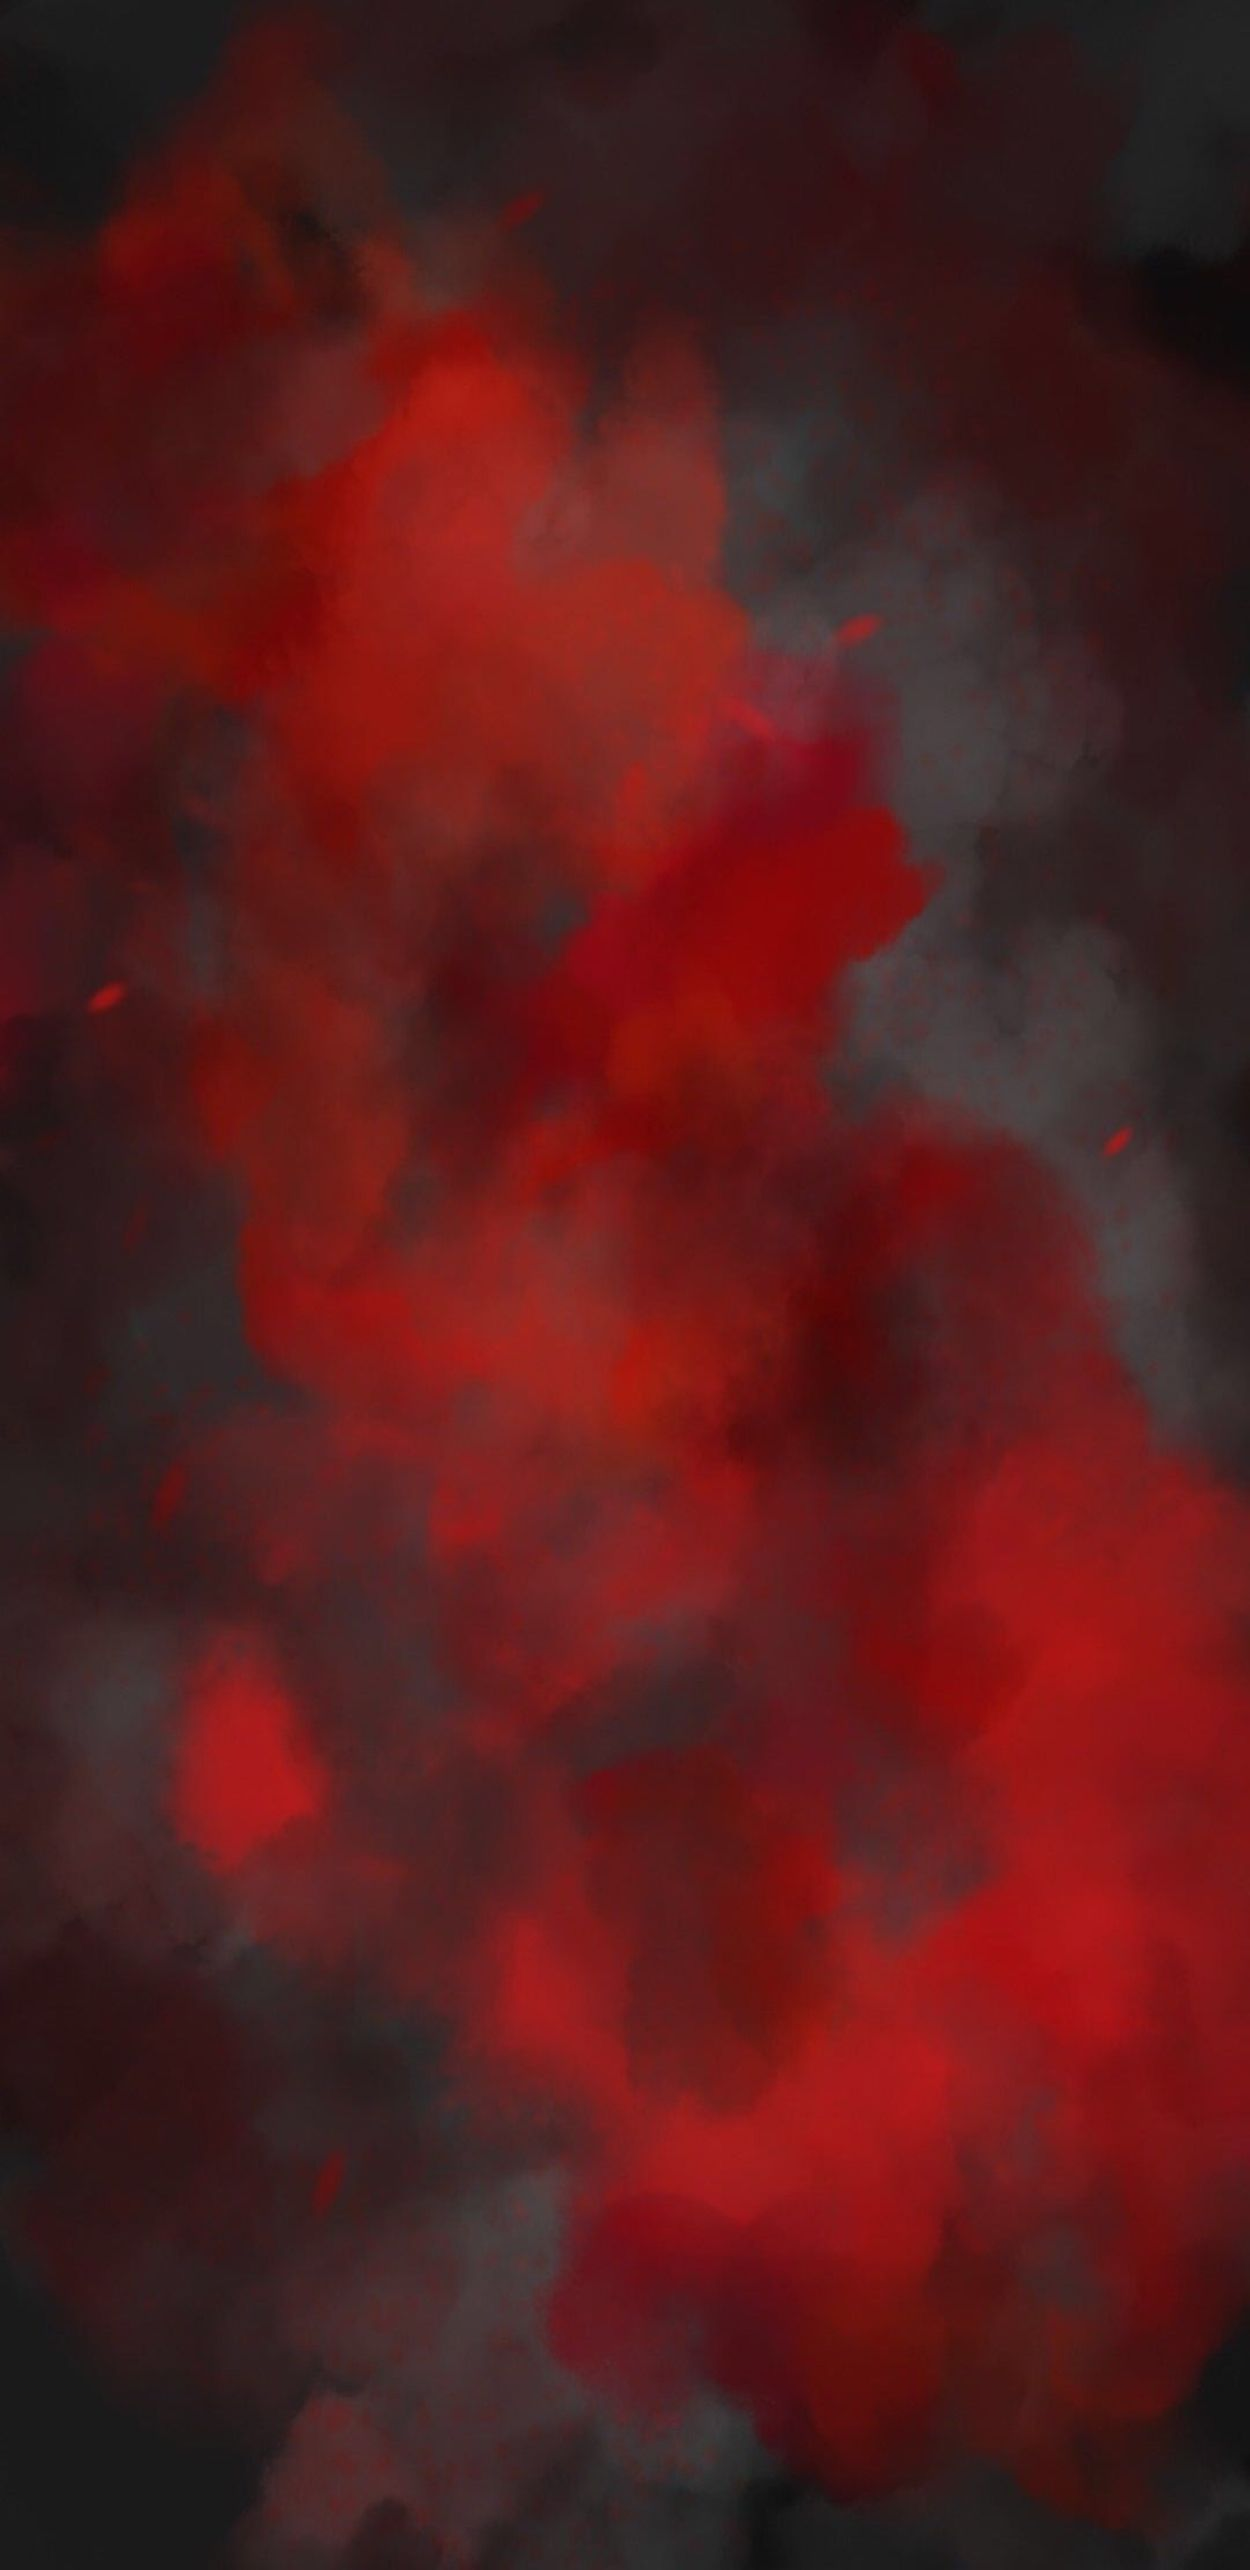 Red Dark Blood Abstract Wallpaper Galaxy Clean Beauty Colour